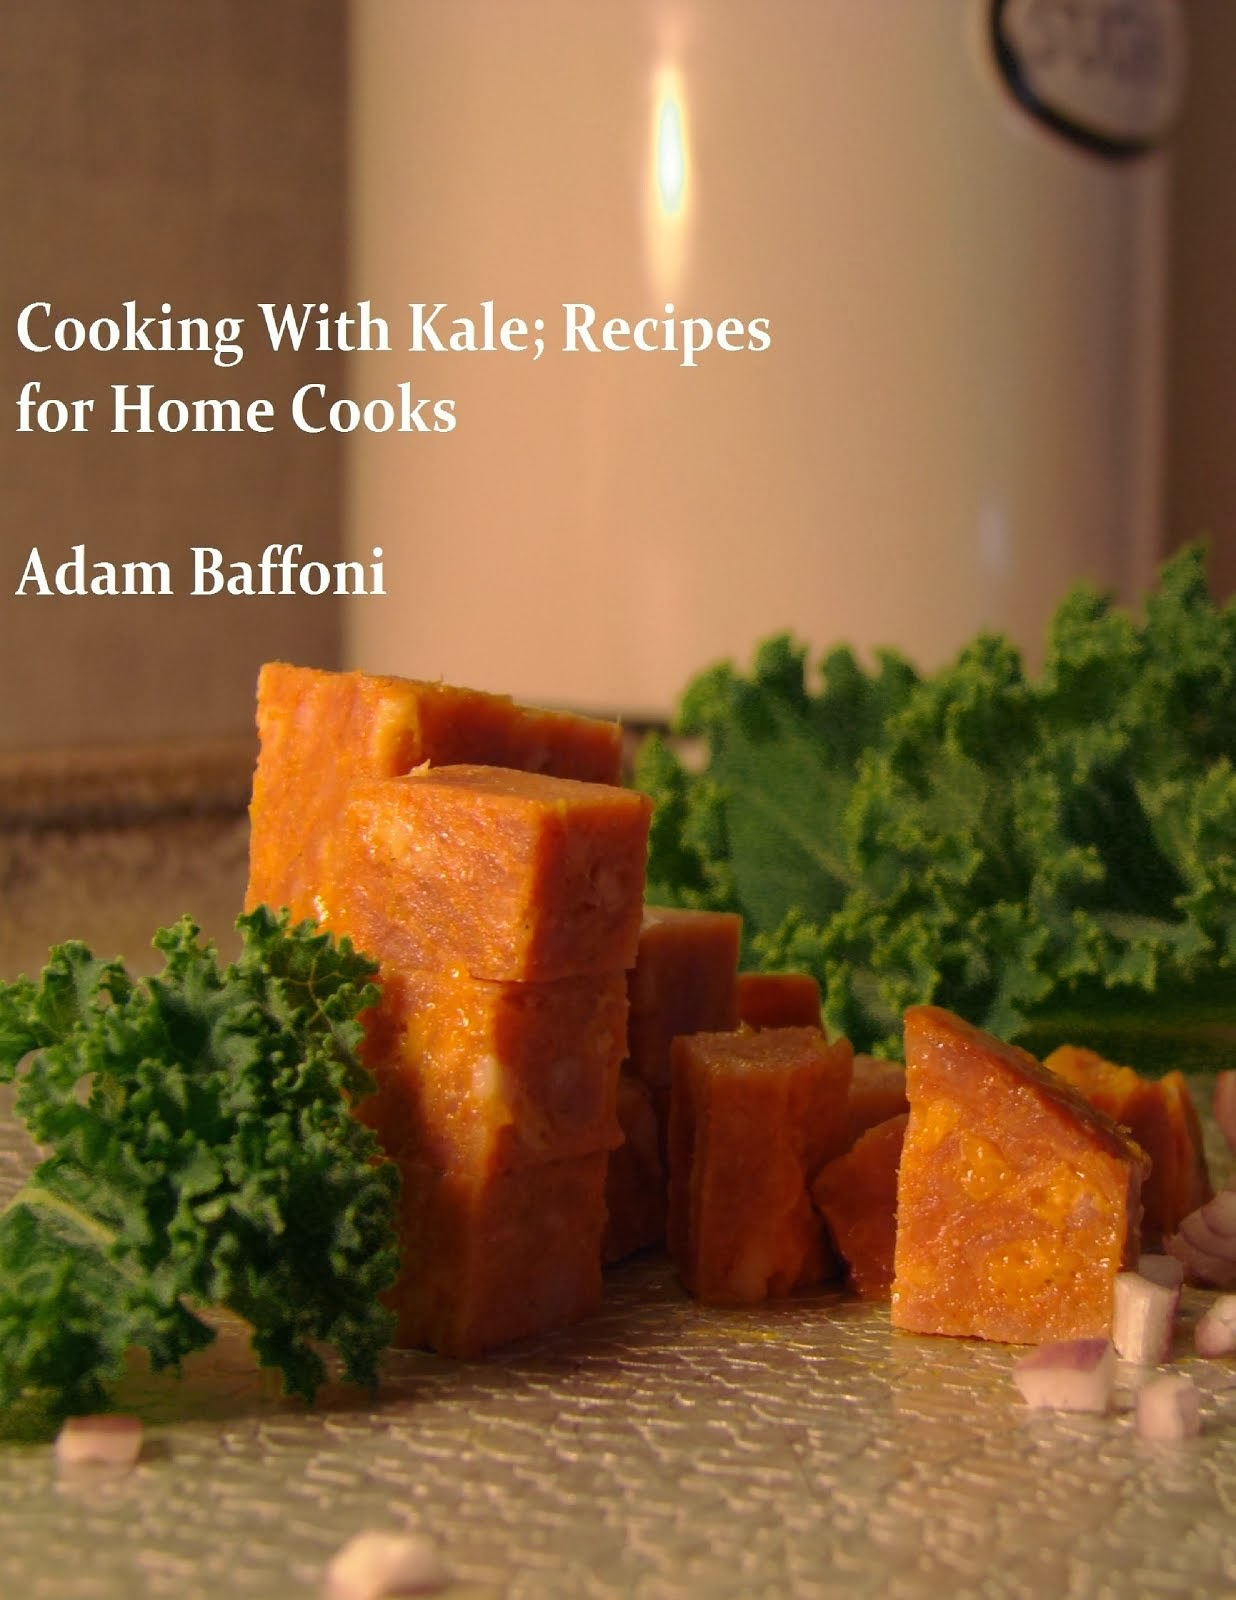 Download My new Cookbook From Amazon